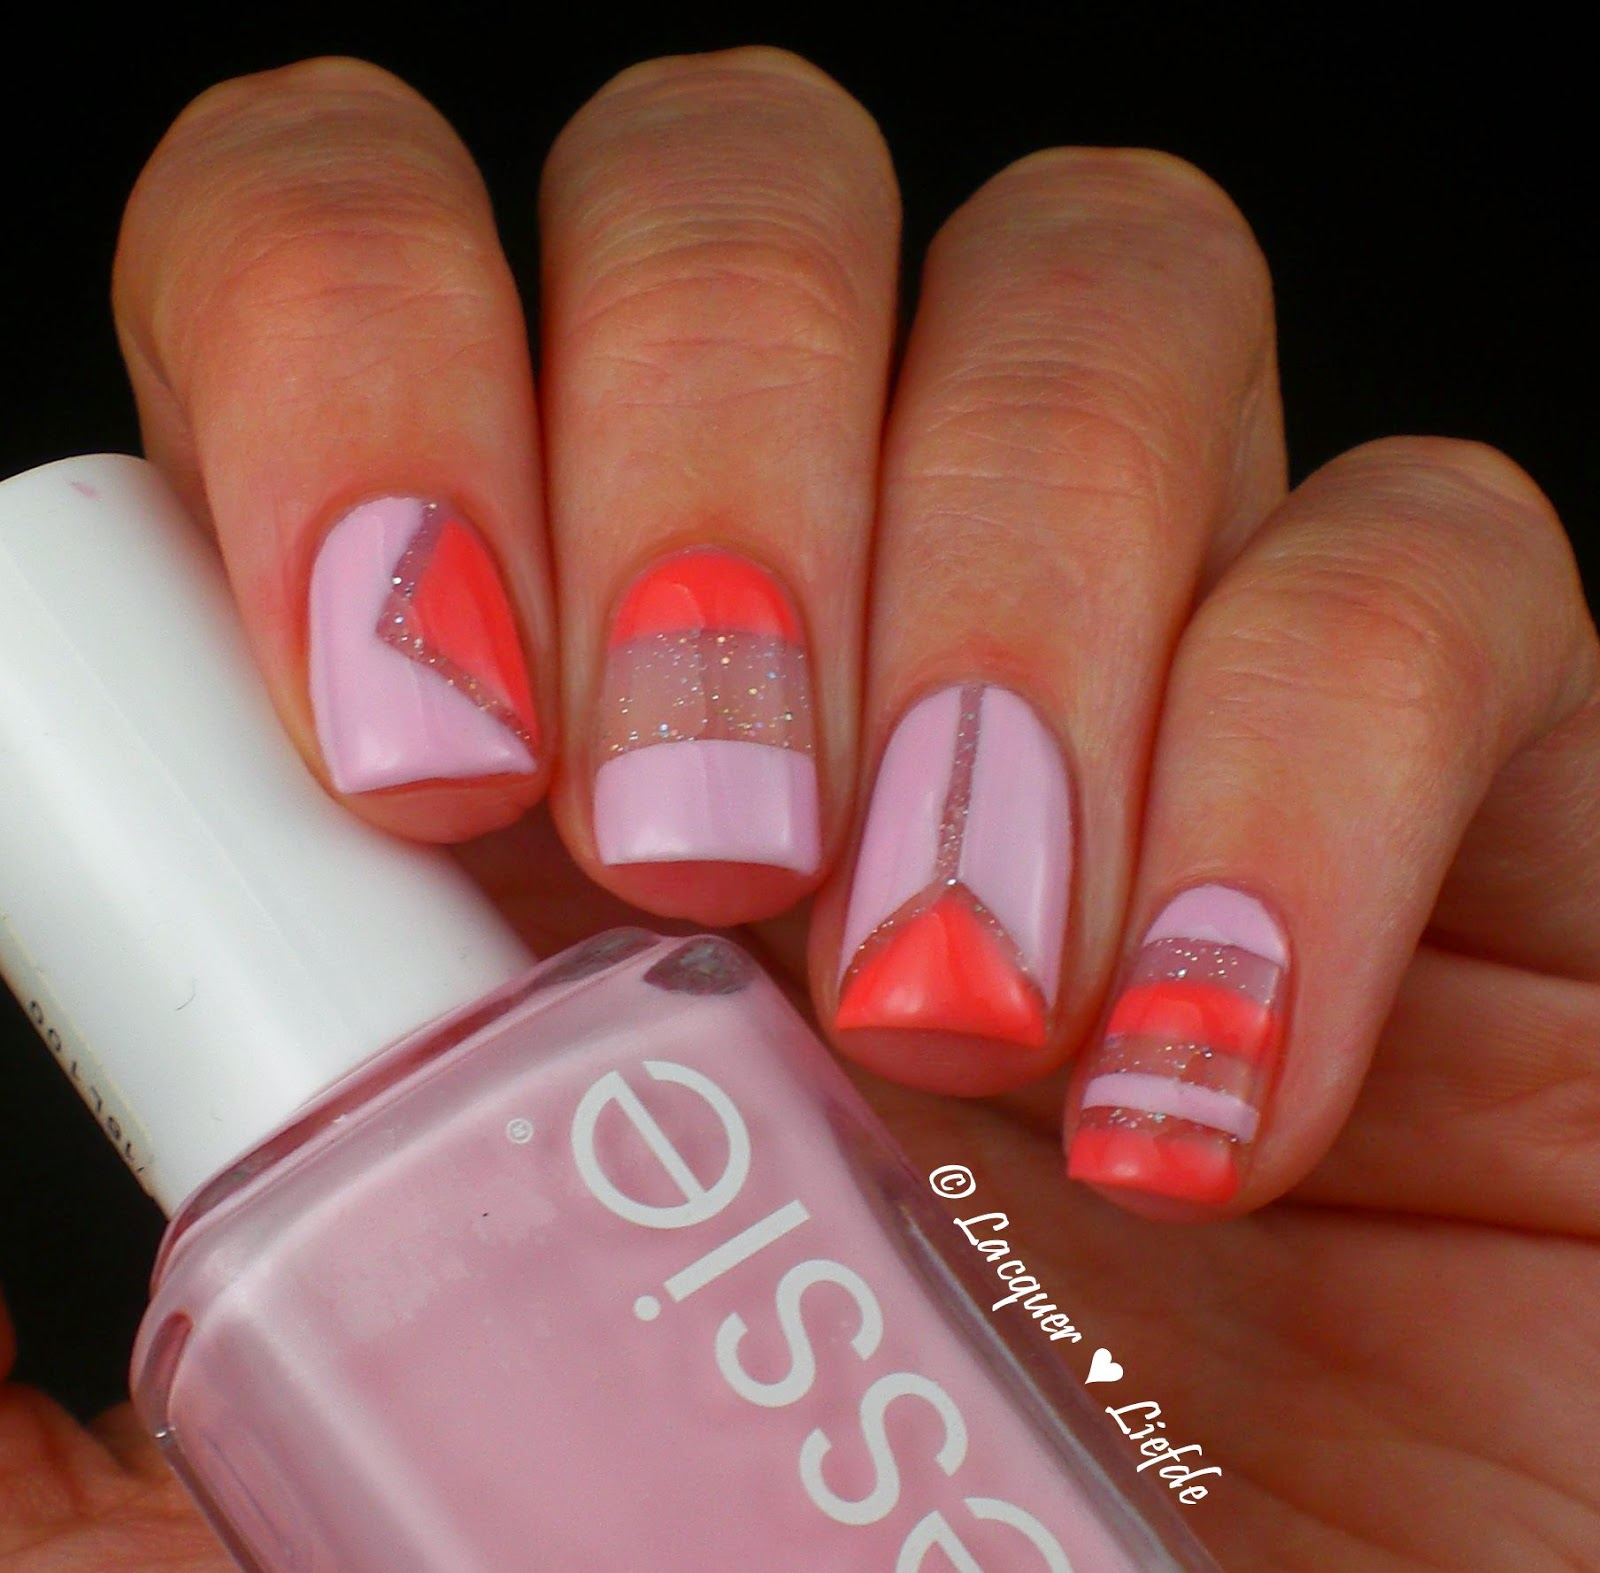 Cut Out Design with Essie Romper Room and Resort Fling and Catrice Ultra Stay & Gel Shine